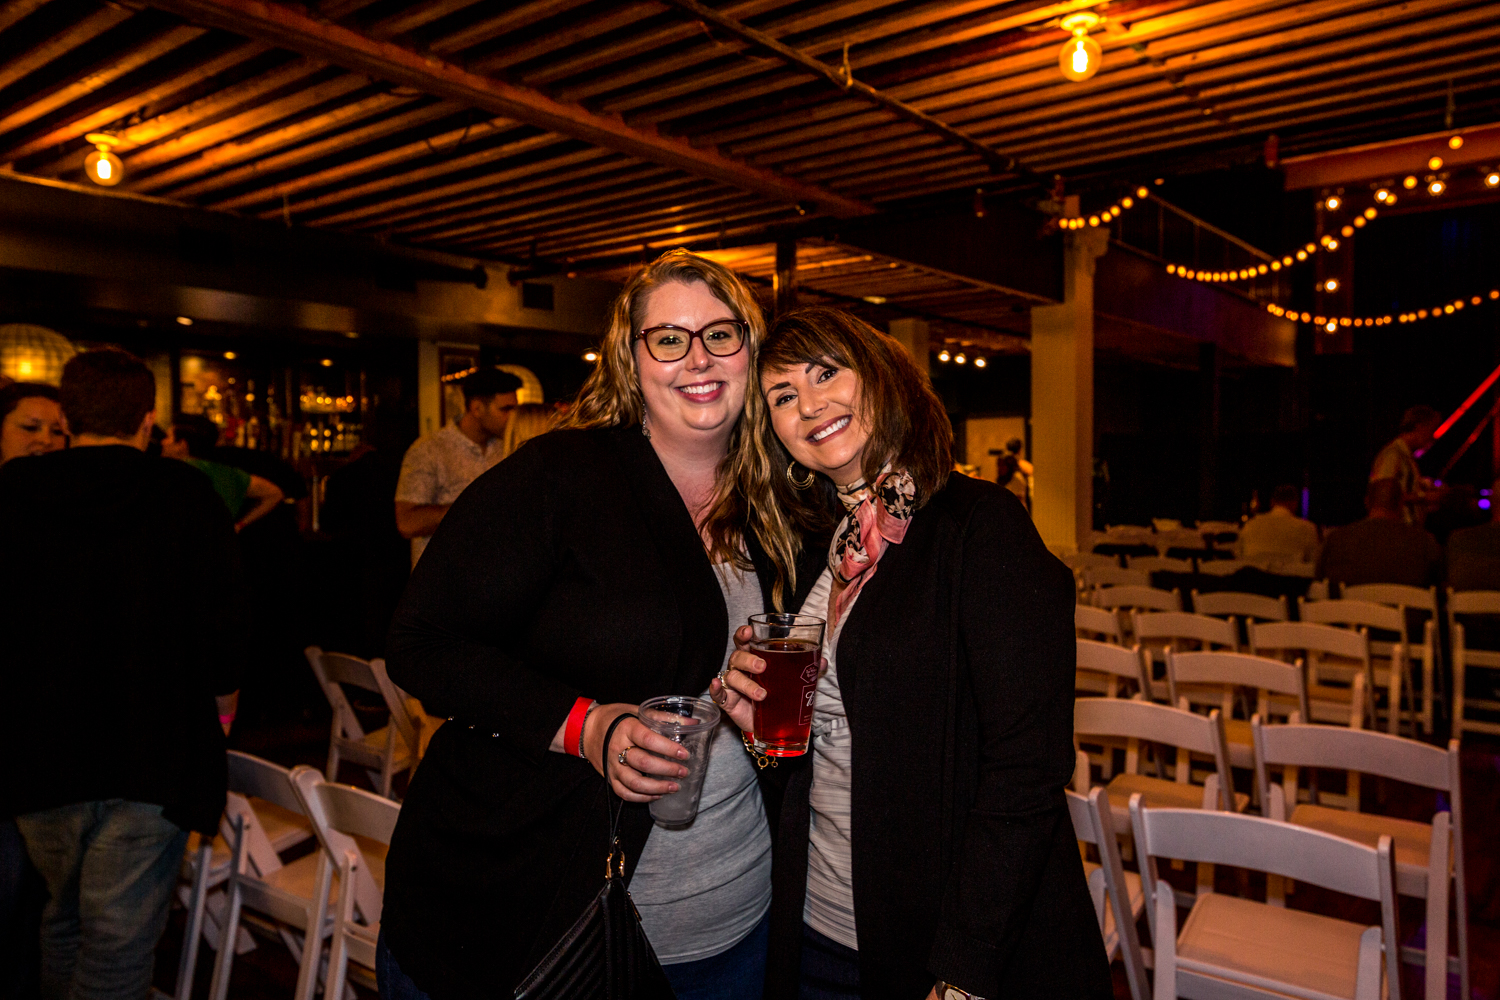 Jacque Kreitzer and Janice K. / Image: Catherine Viox{ }// Published: 10.26.19